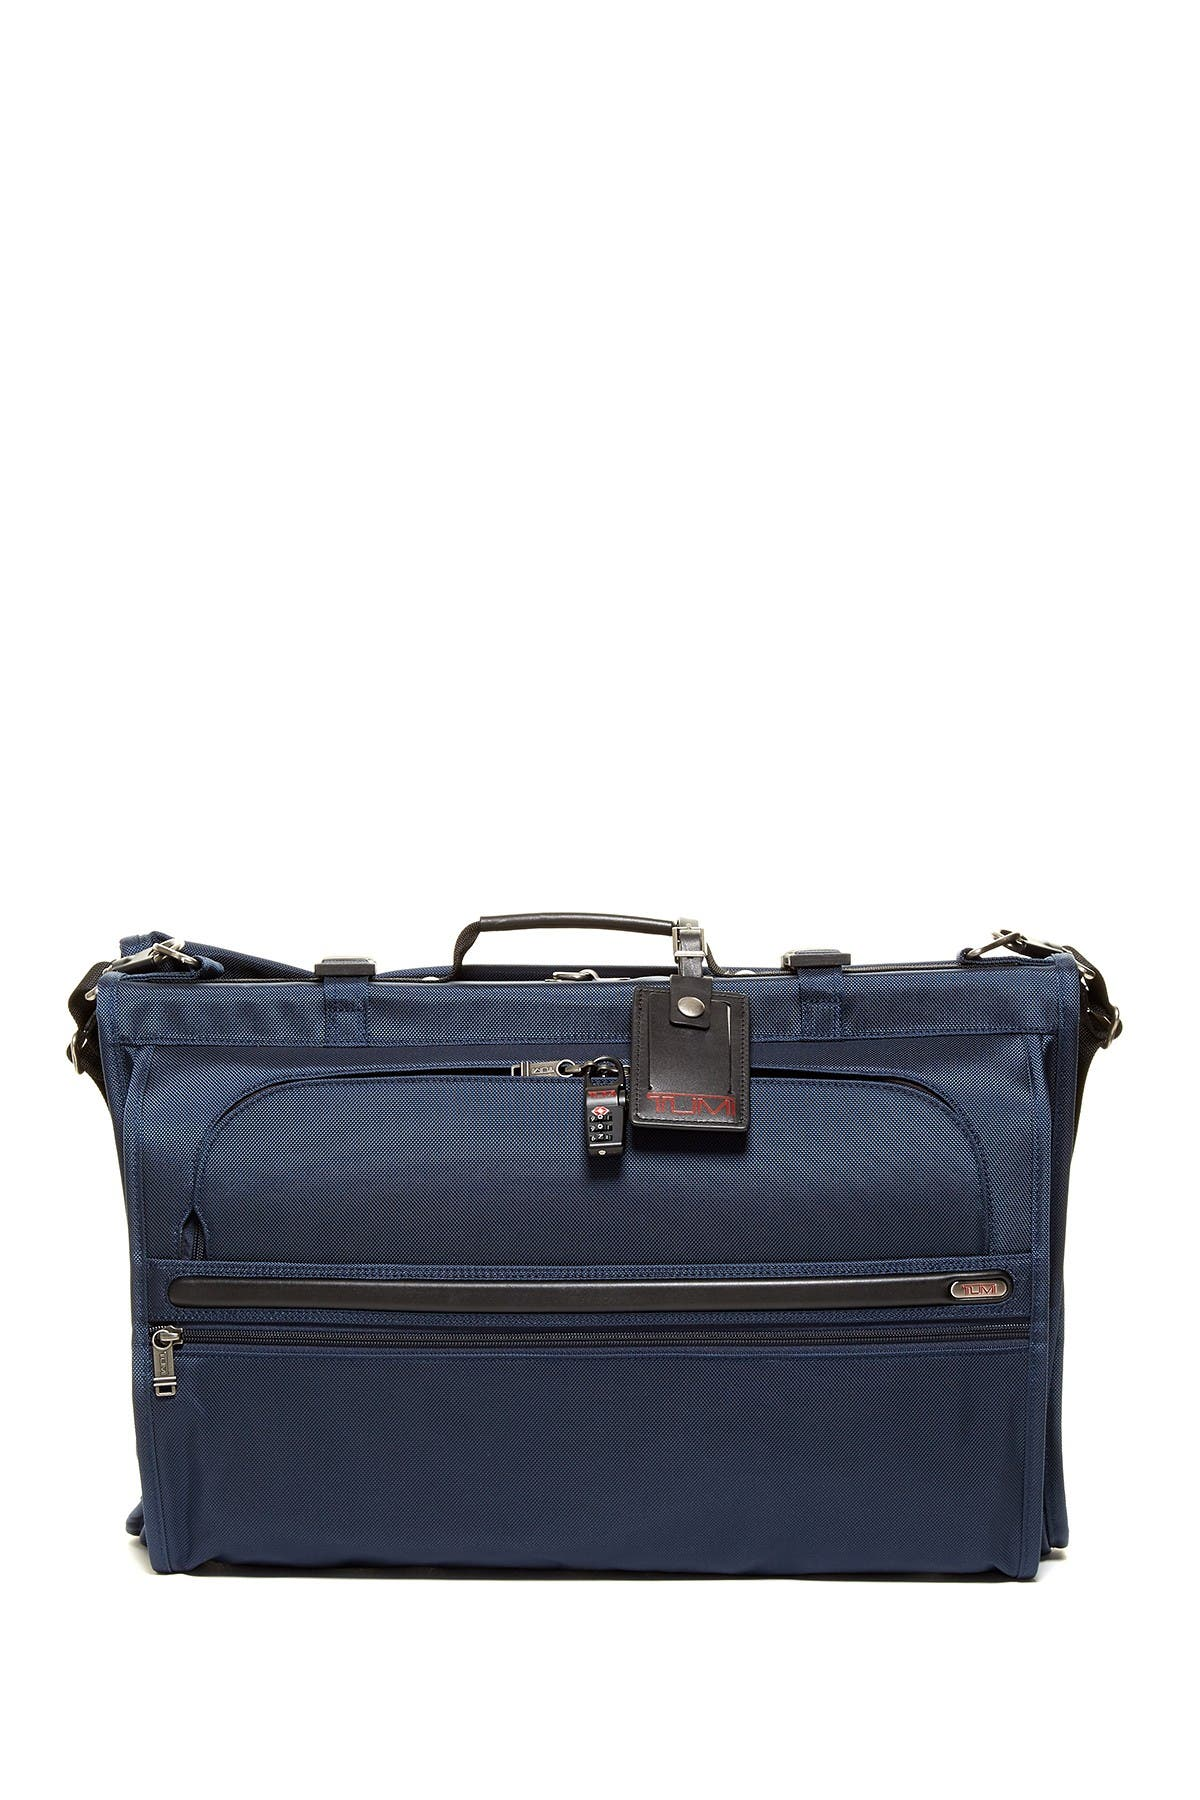 Image of Tumi Tri Fold Nylon Garment Bag